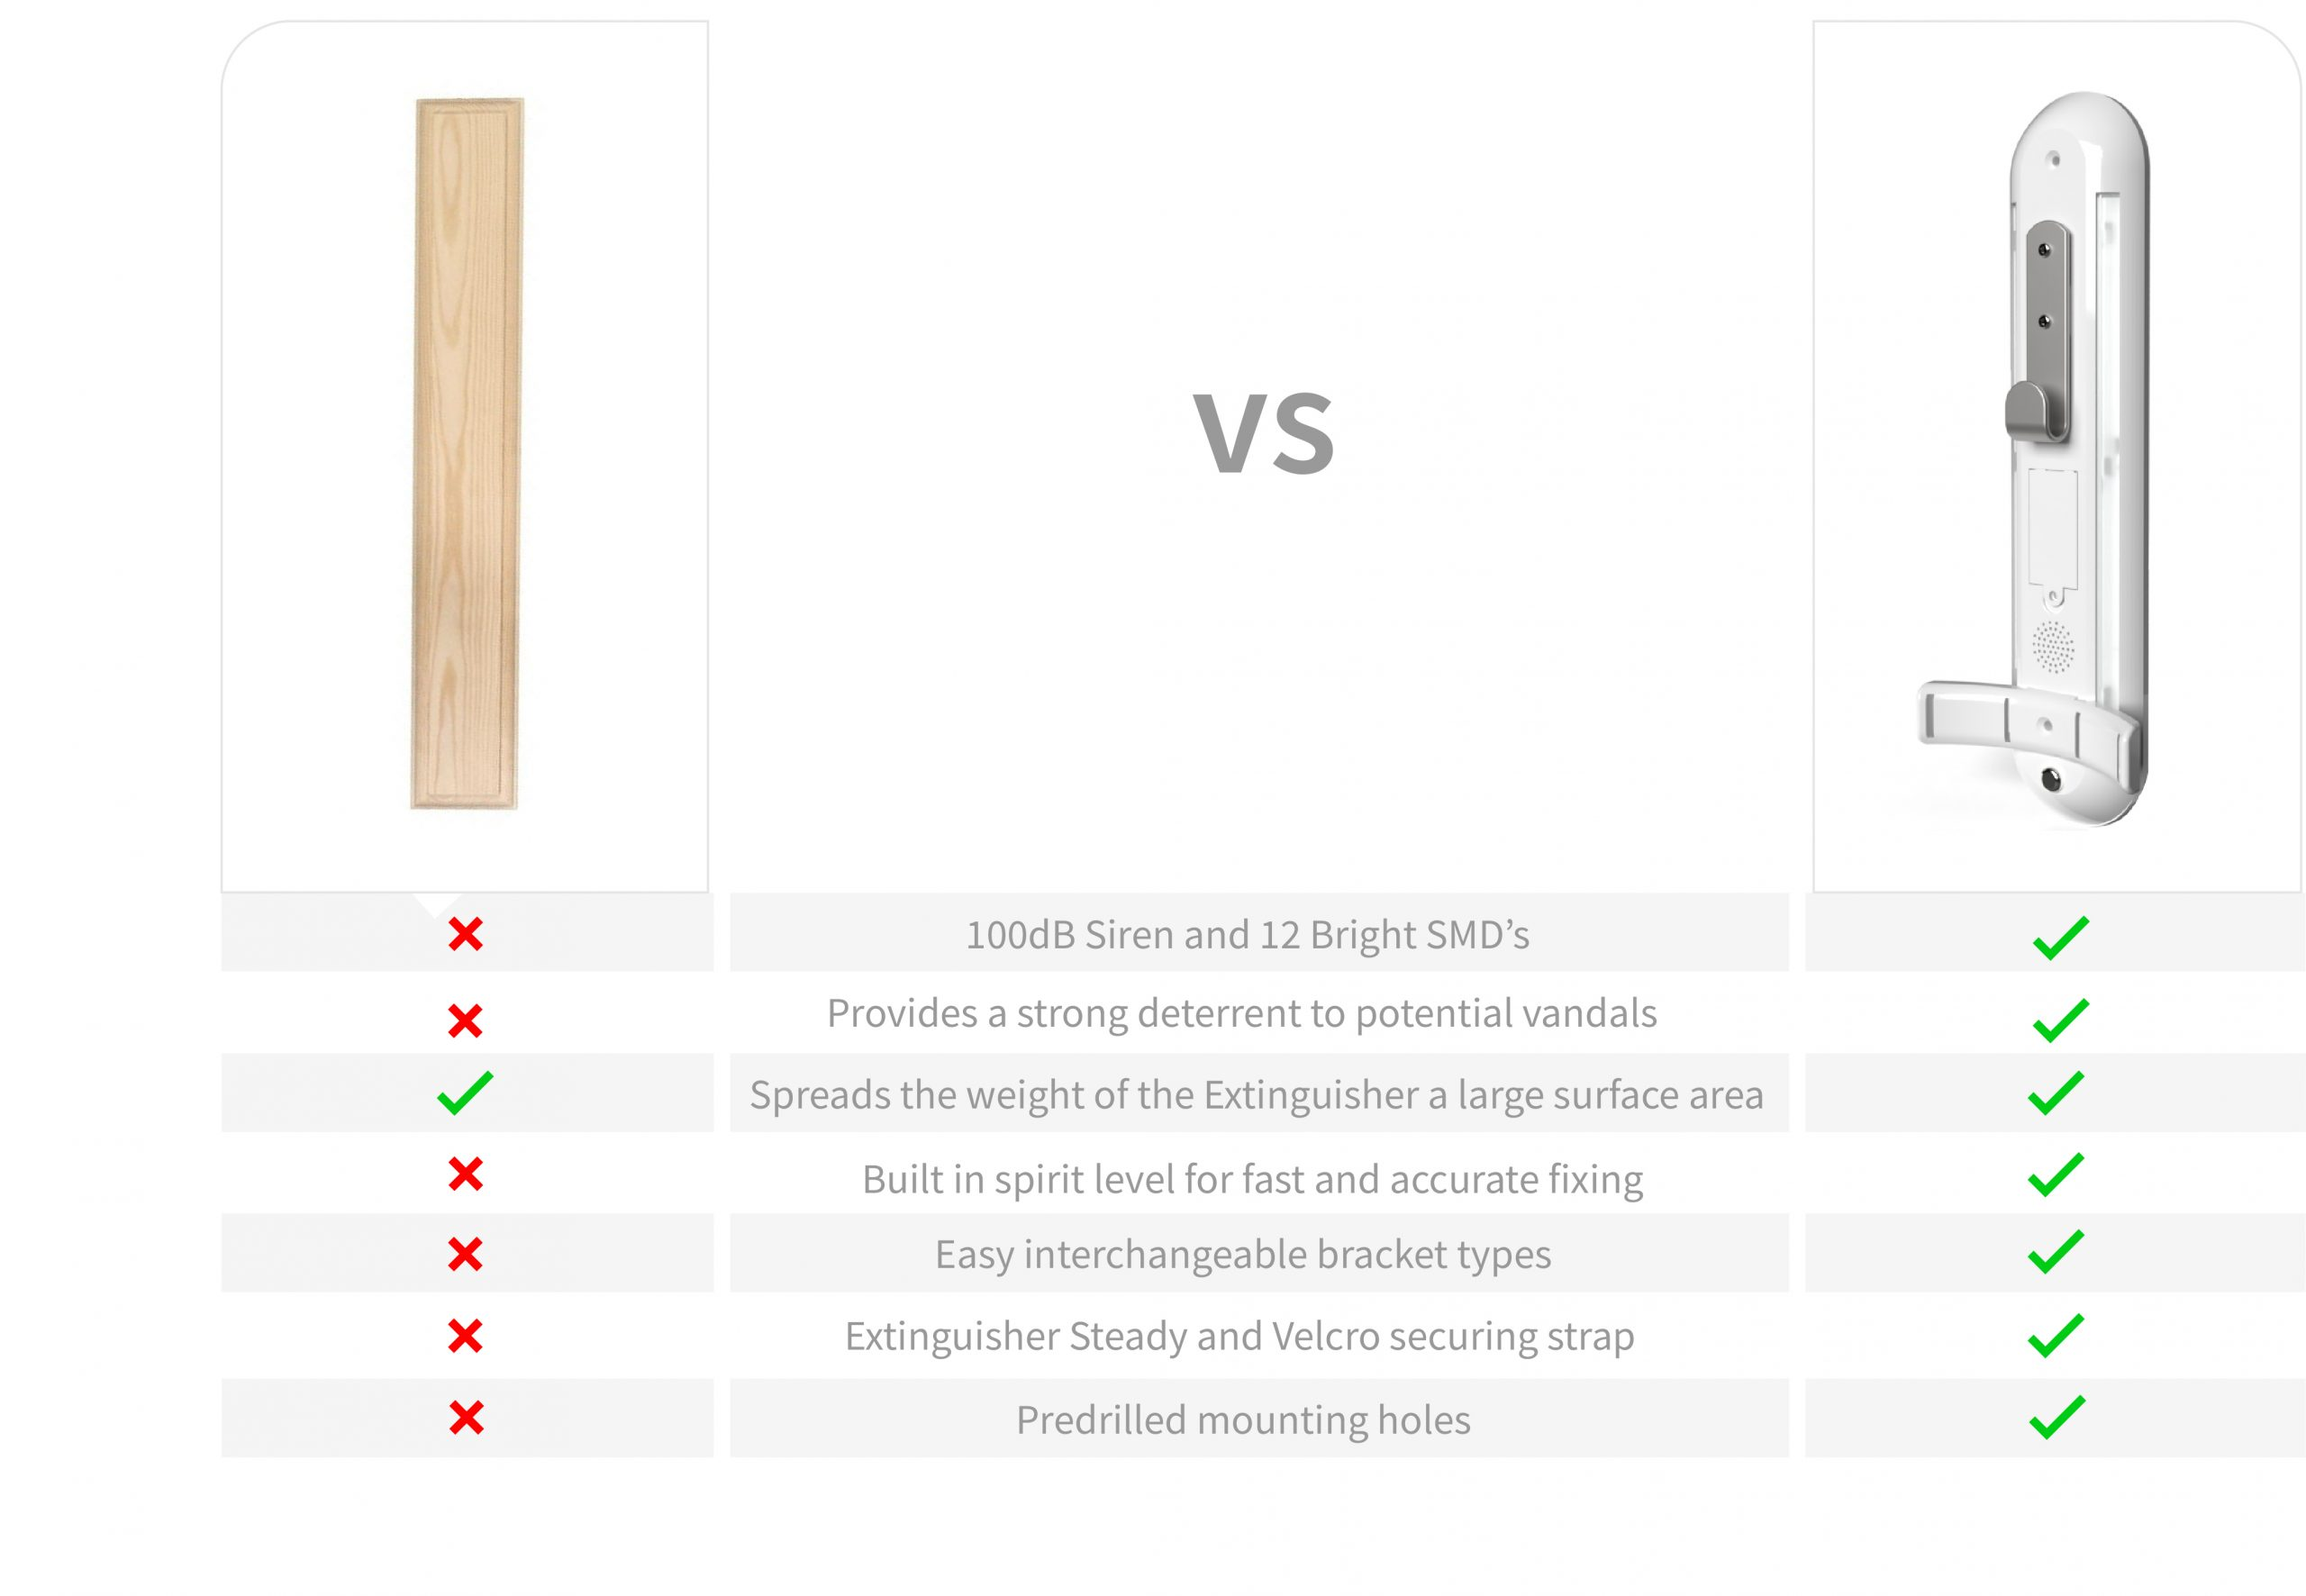 comparison between standard fire extinguisher wall bracket and x alert extinguisher monitoring system